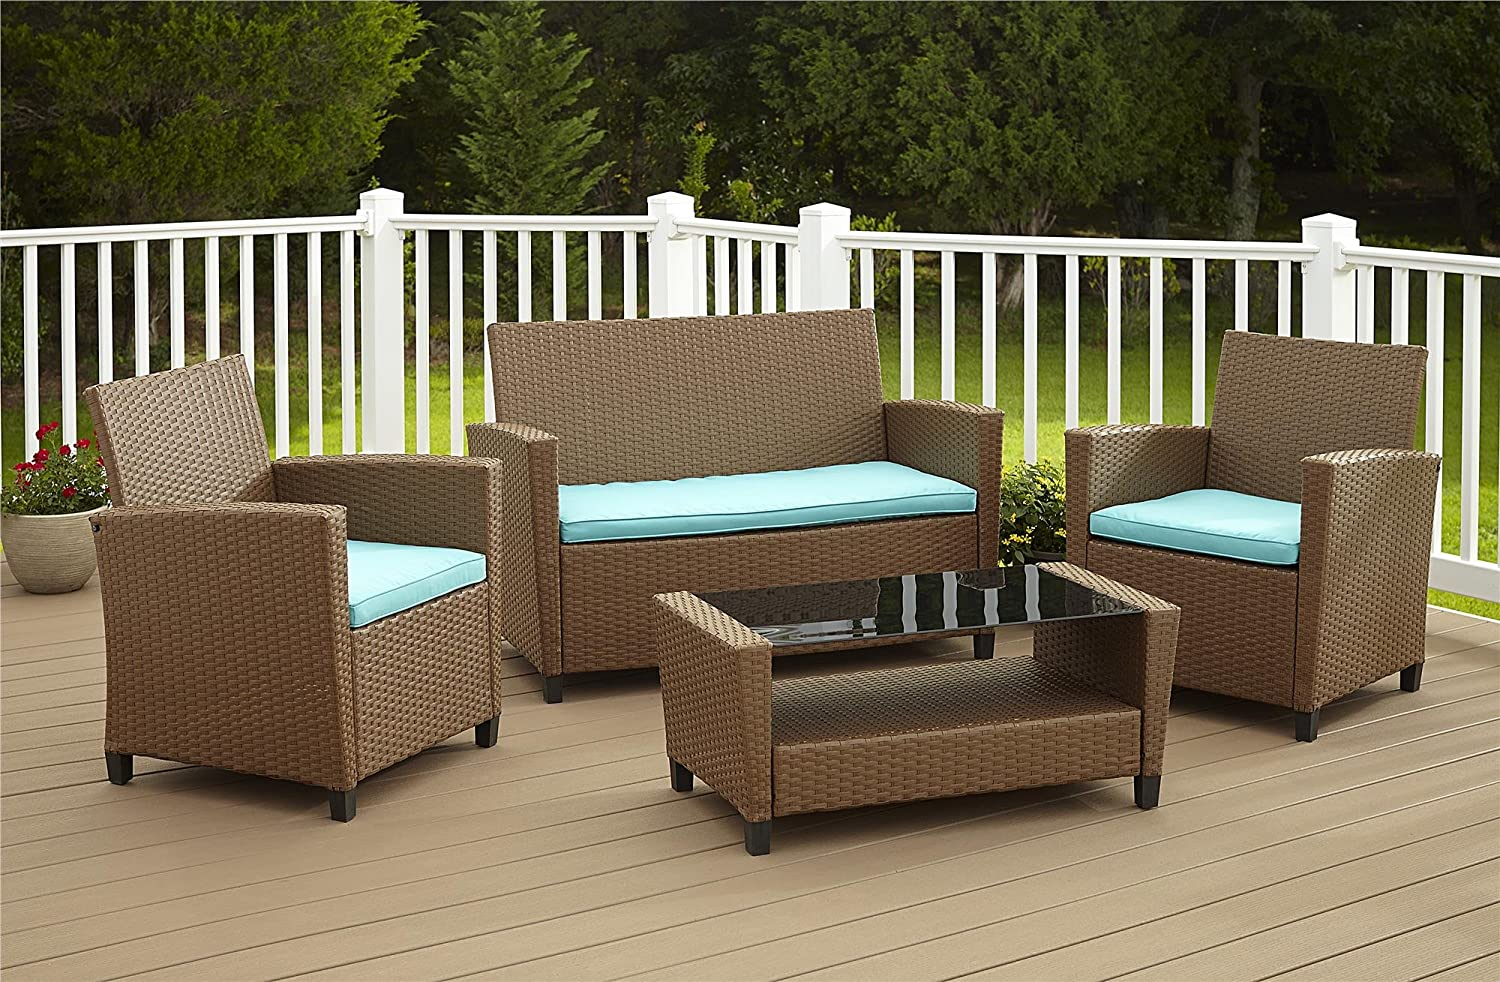 Remove term: ideas outdoor living spaces ideas outdoor living spaces